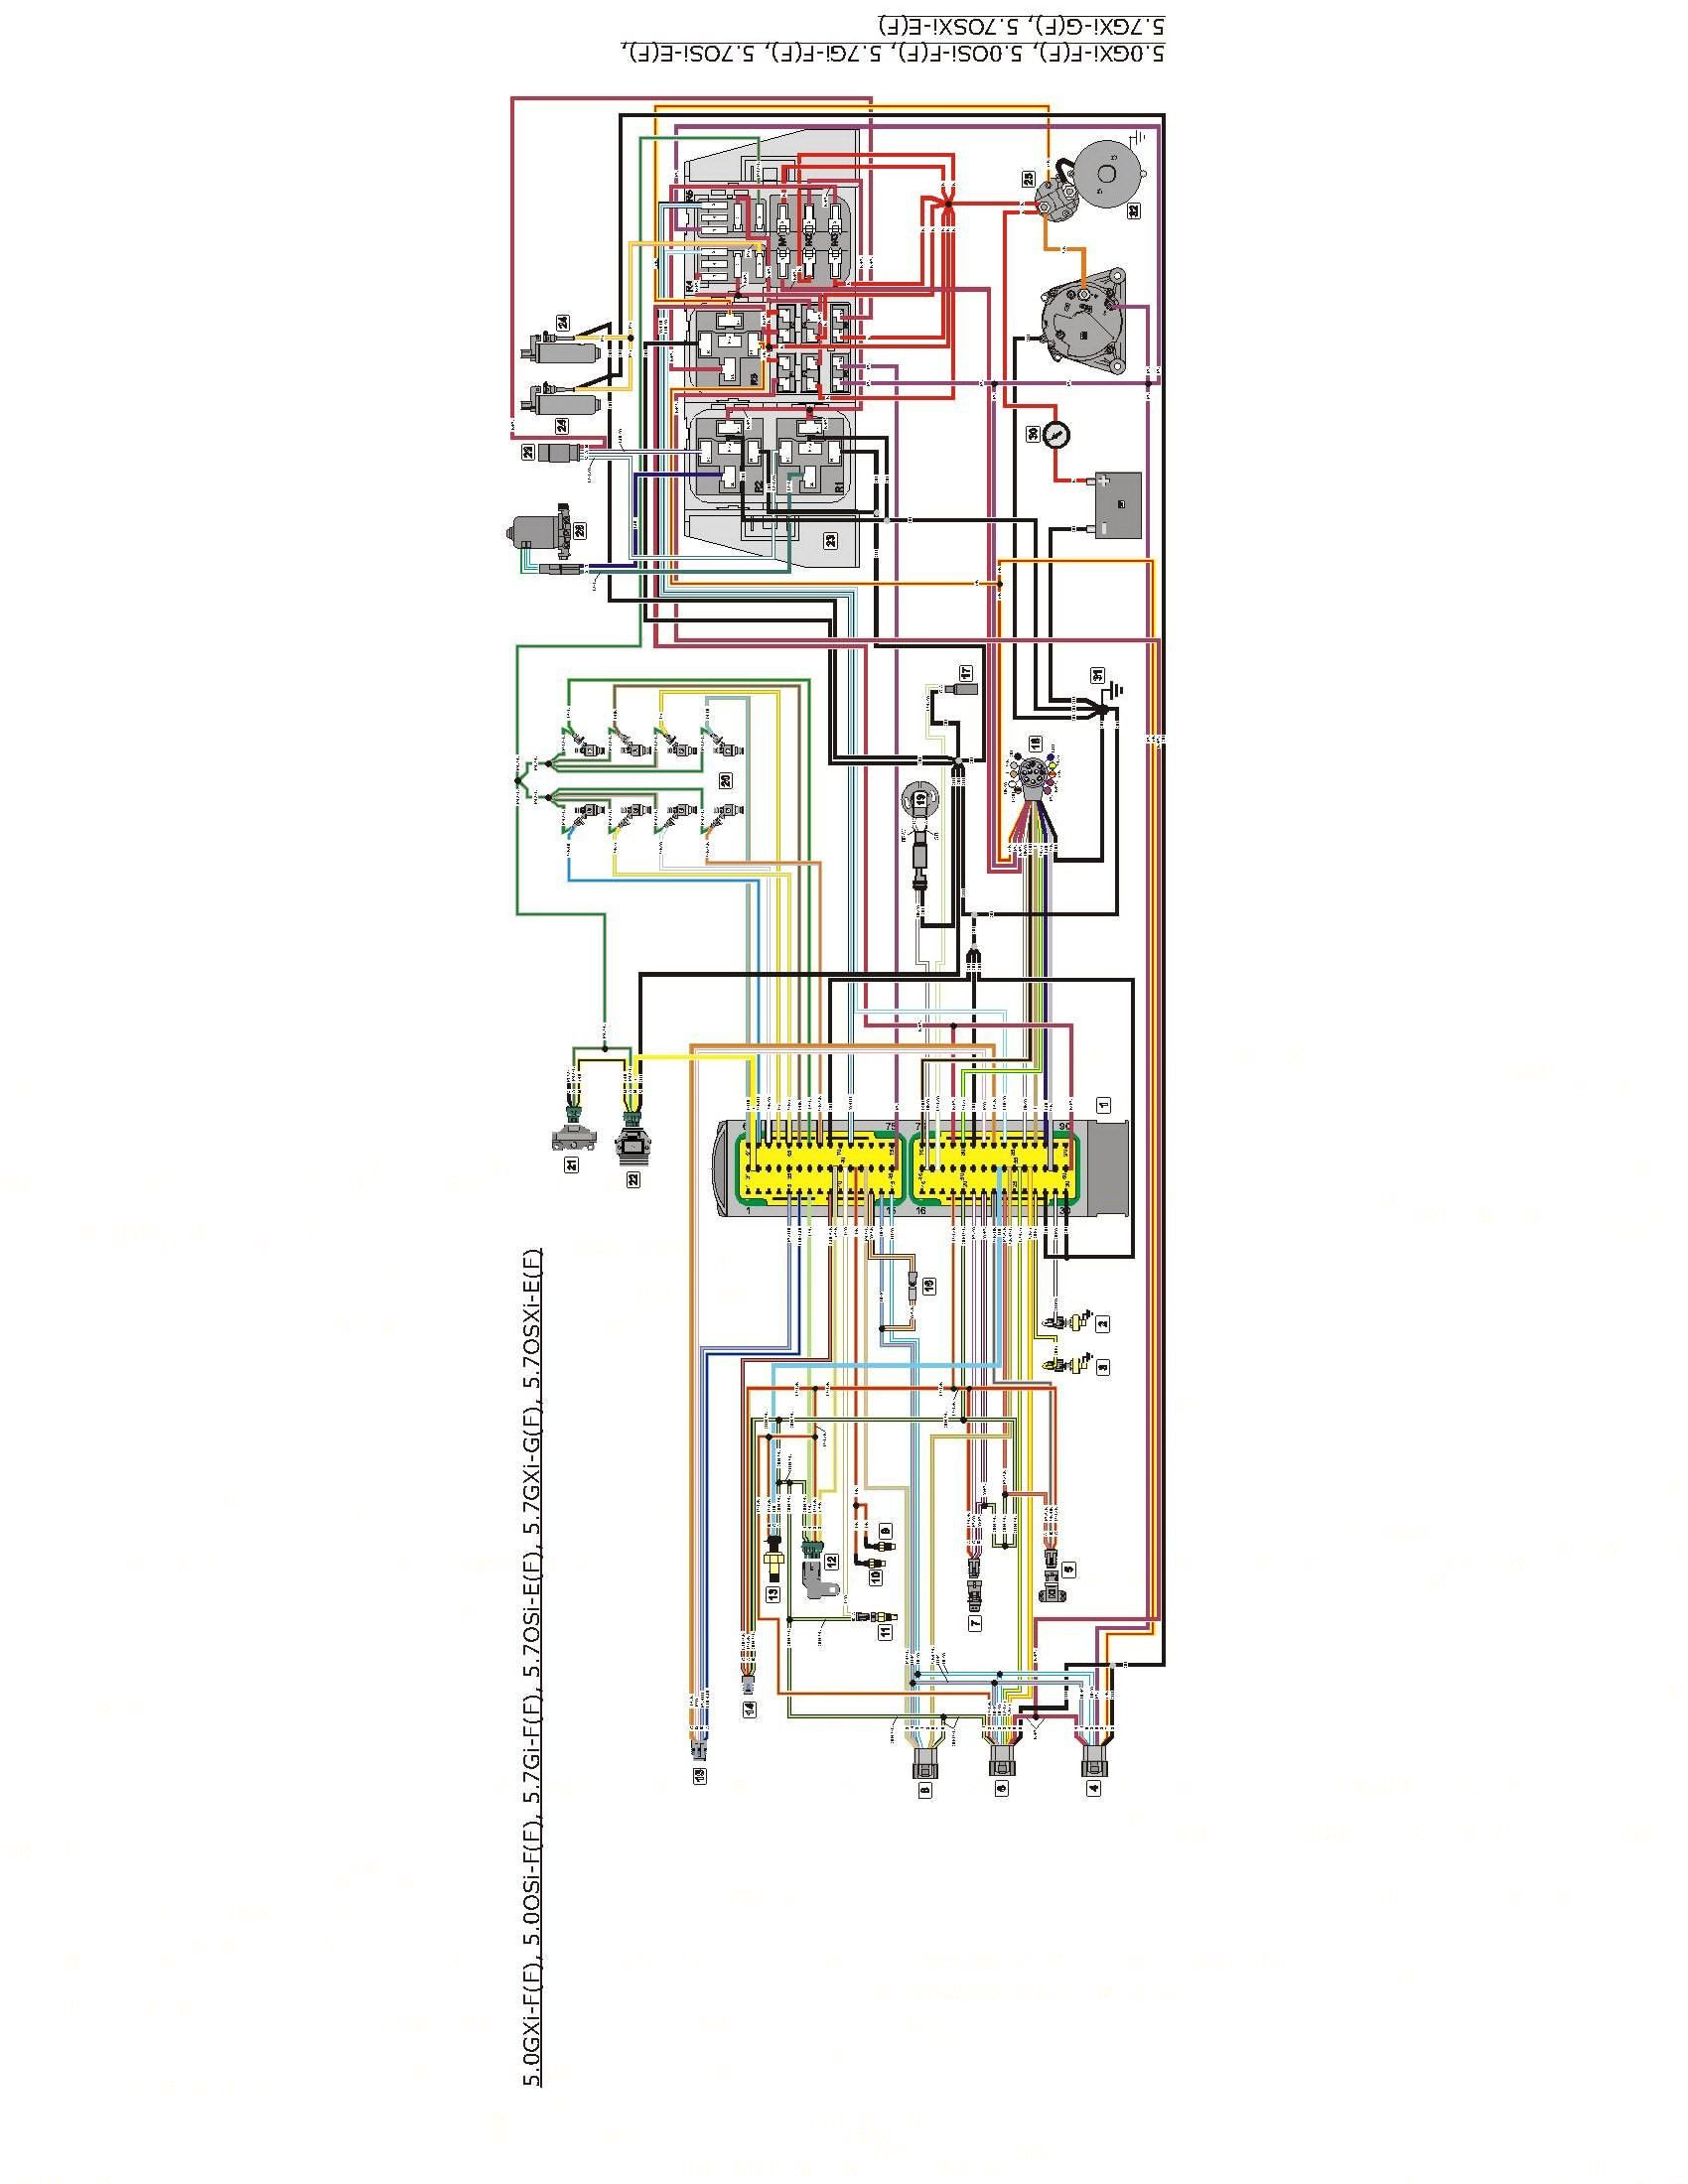 Volvo Pentum Ignition Switch Wiring Diagram - honda lower